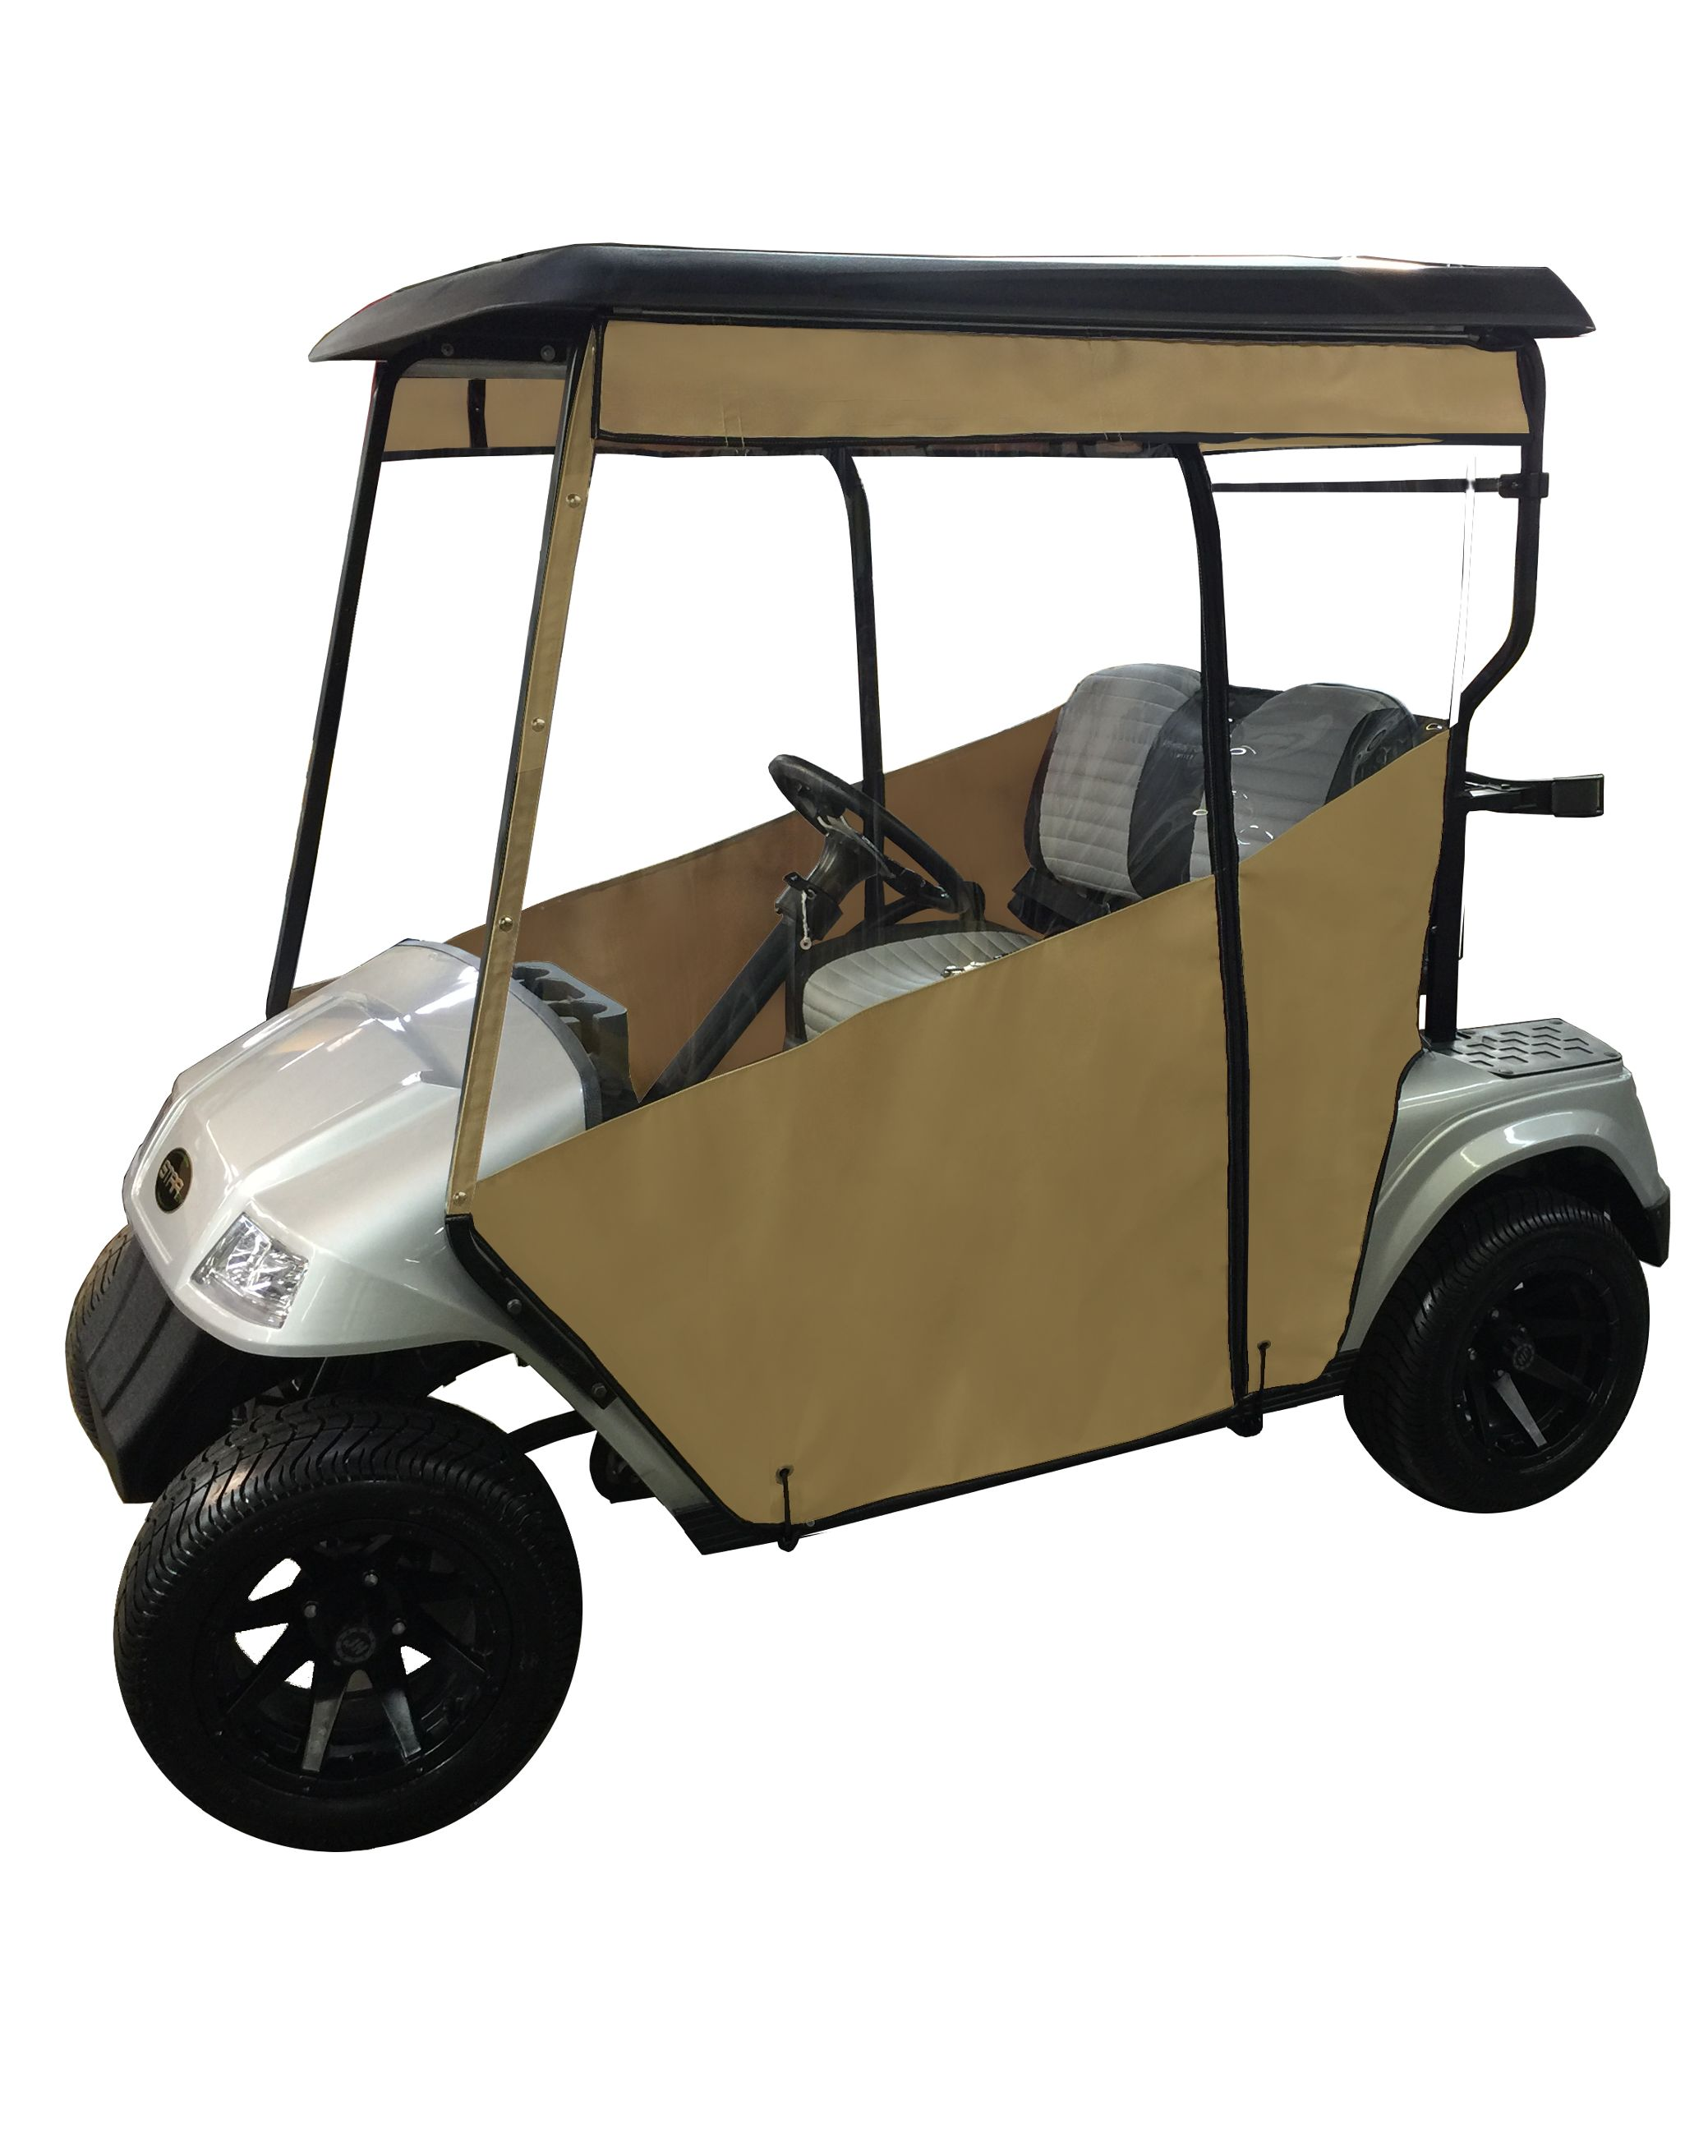 Sunbrella Golf Cart Rain Cover on clear plastic golf cart covers, club car golf cart rain covers, rail golf cart covers, eevelle golf cart covers, vinyl golf cart covers, door works golf cart covers, star golf cart covers, portable golf cart covers, national golf cart covers, buggies unlimited golf cart covers, sam's club golf cart covers, harley golf cart seat covers, yamaha golf cart covers, canvas golf cart covers, classic golf cart covers, discount golf cart covers, custom golf cart covers, golf cart cloth seat covers, golf cart canopy covers, 3 sided golf cart covers,